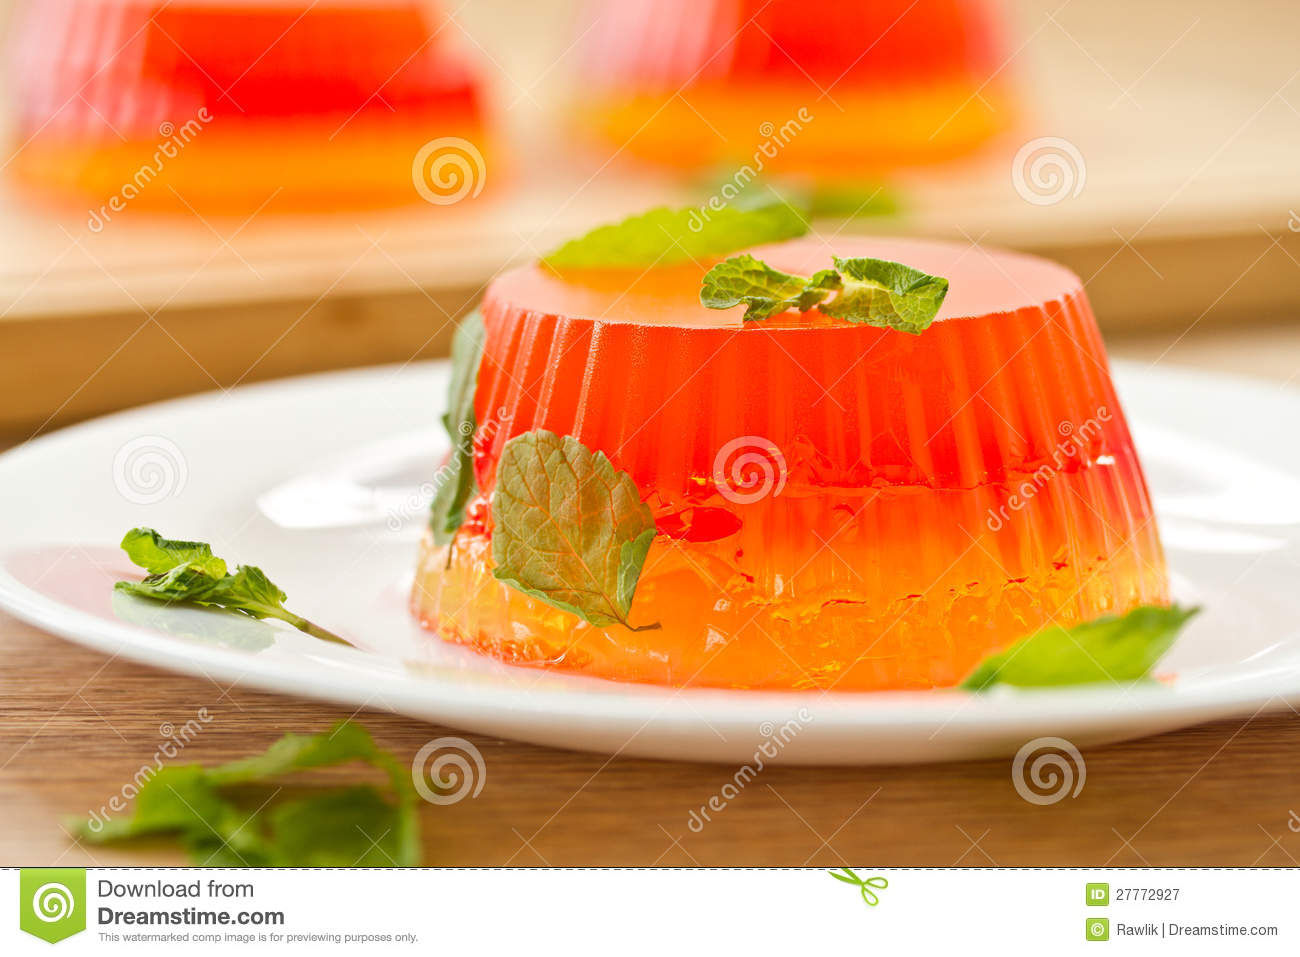 Fruit Jellies Royalty Free Stock Photography - Image: 27772927